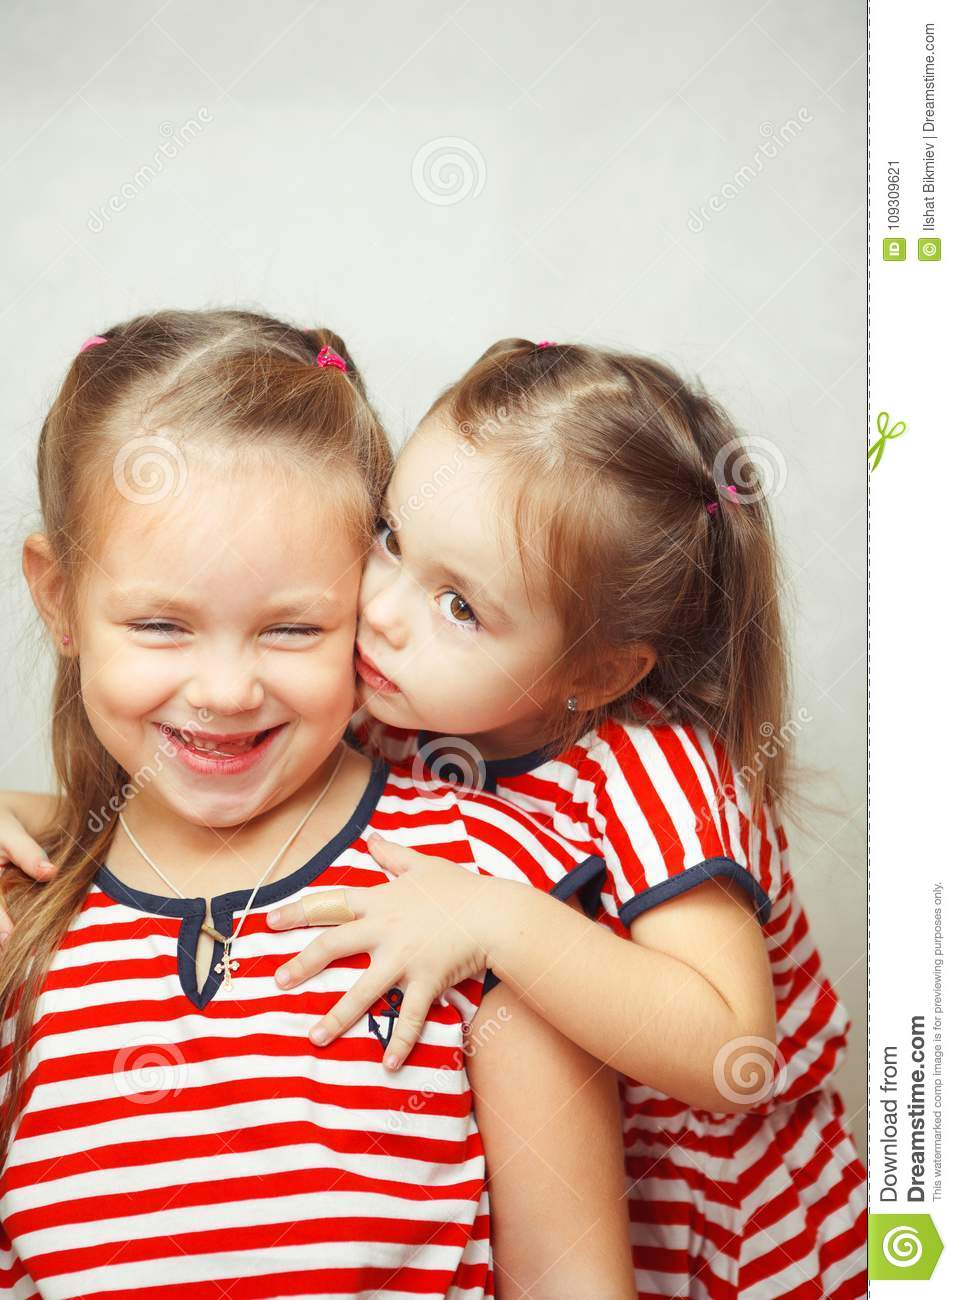 Children Hug Each Other And Smile Happy Kids Stock Image Image Of